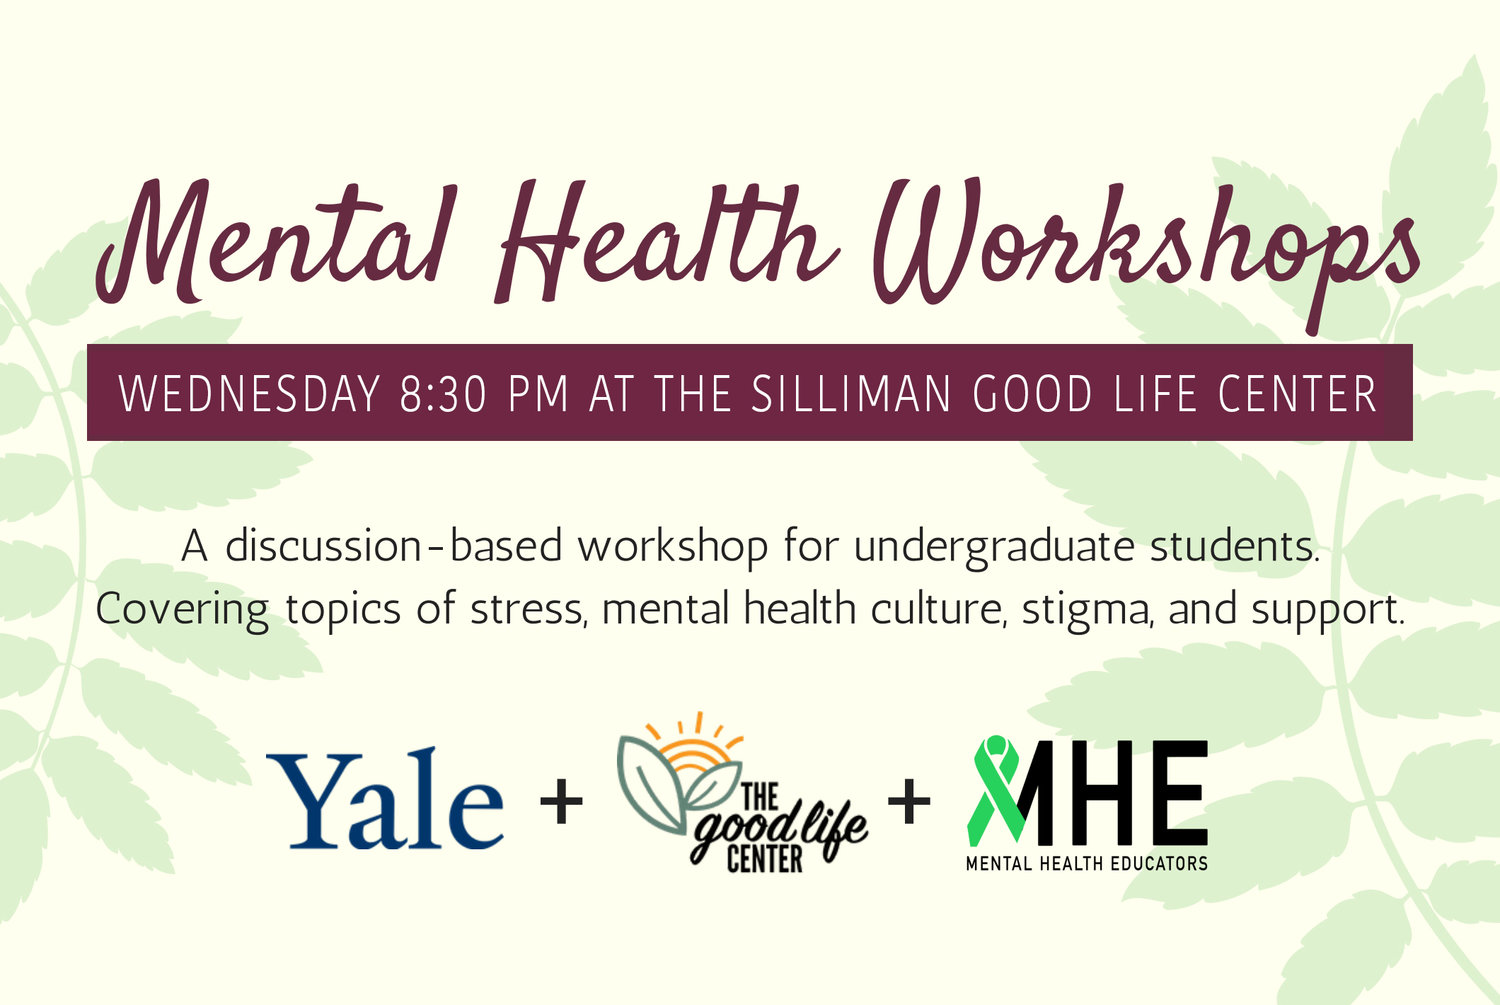 Mental Health Educators Peer Led Workshop The Good Life Center